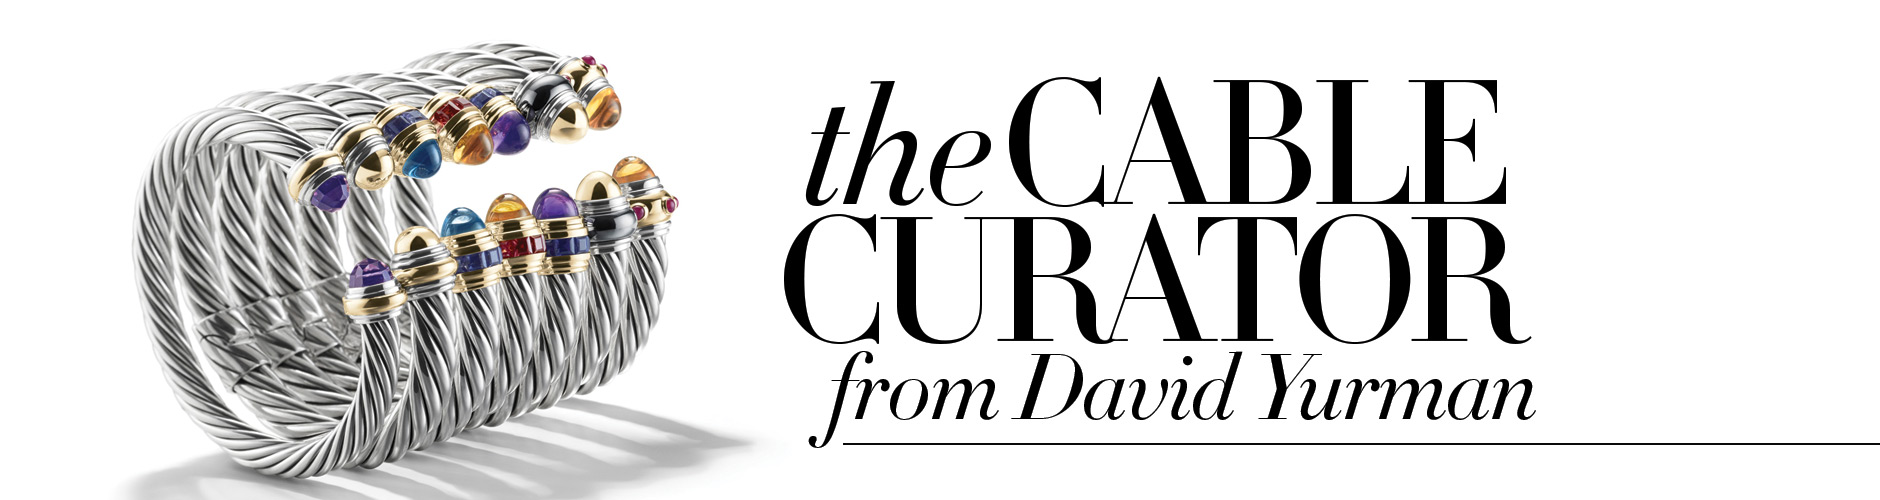 David Yurman: The Cable Curator